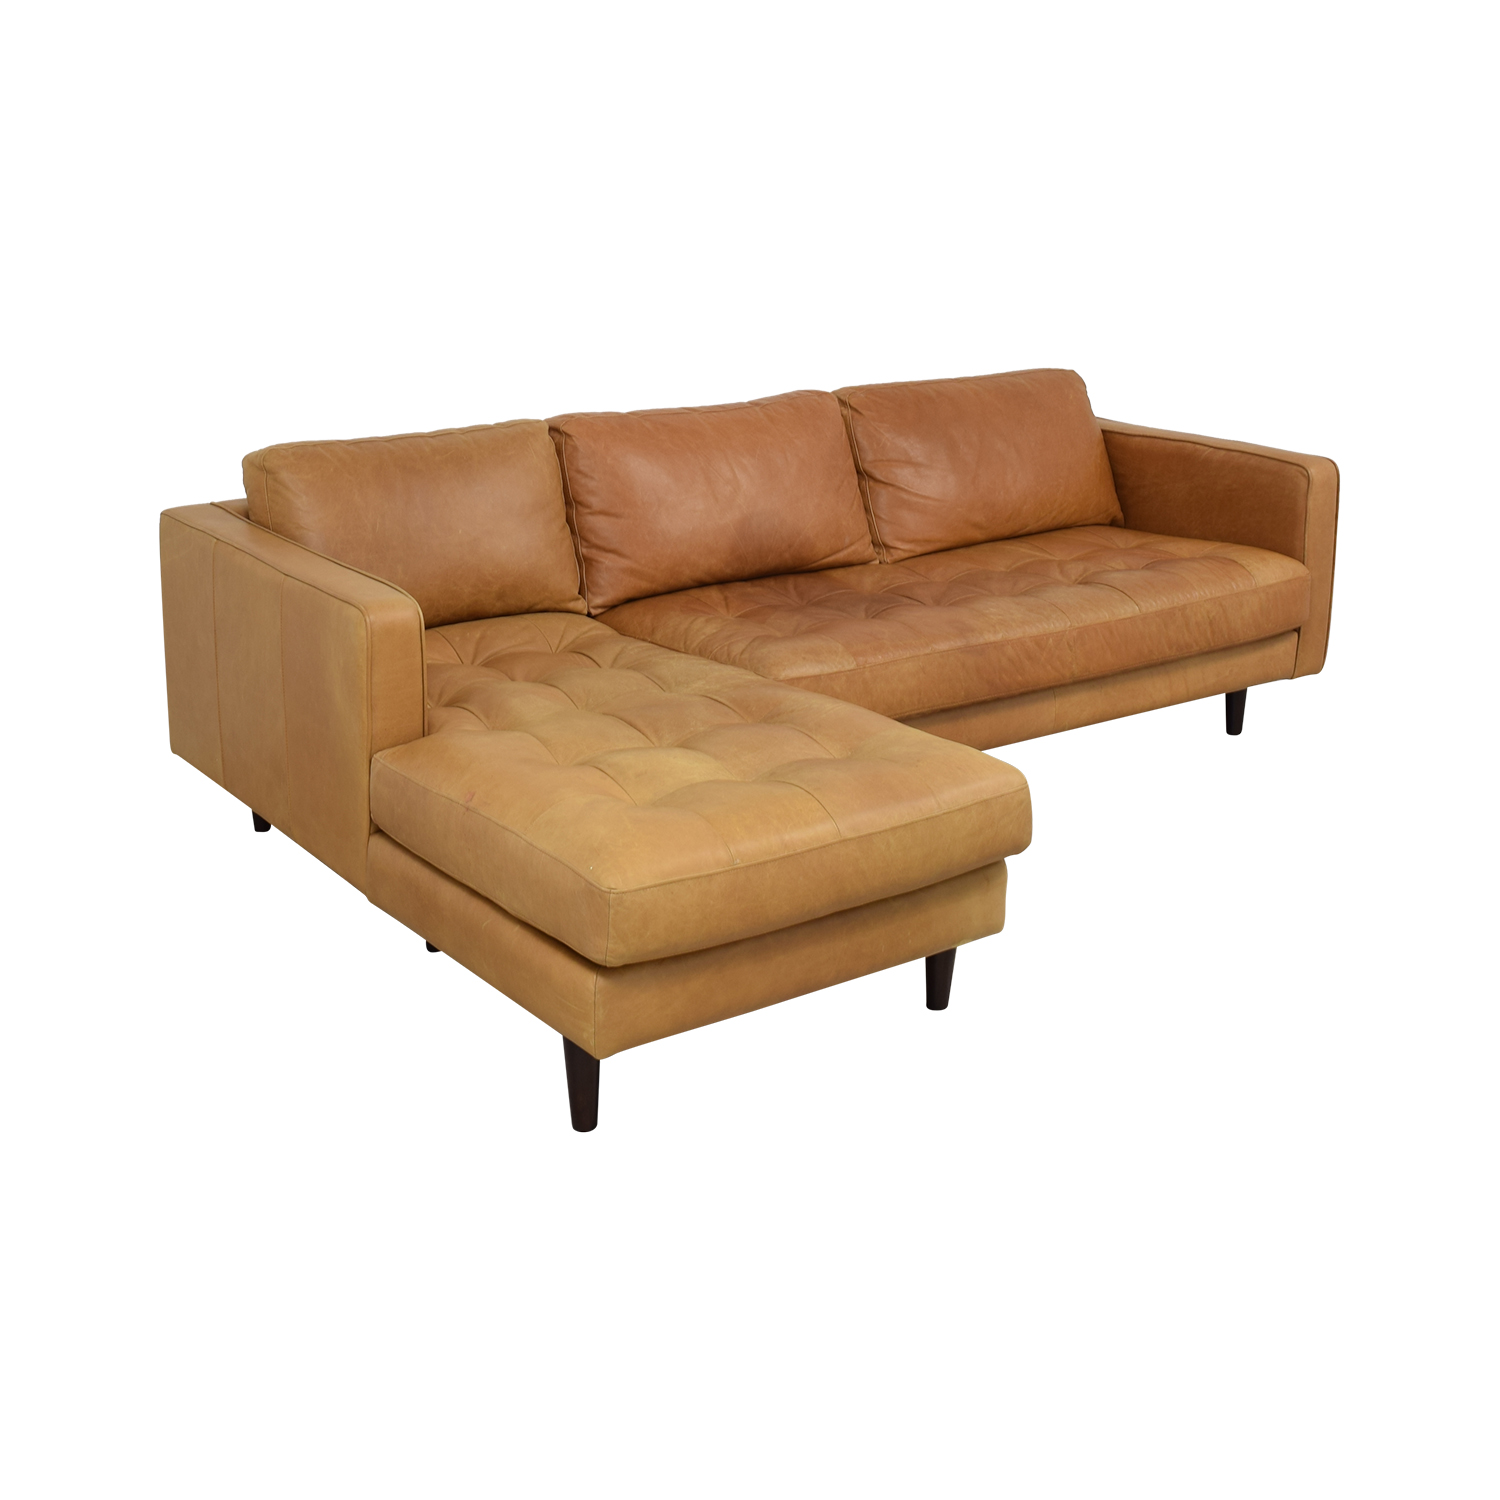 Article Article Sven Charme Sectional Sofa on sale